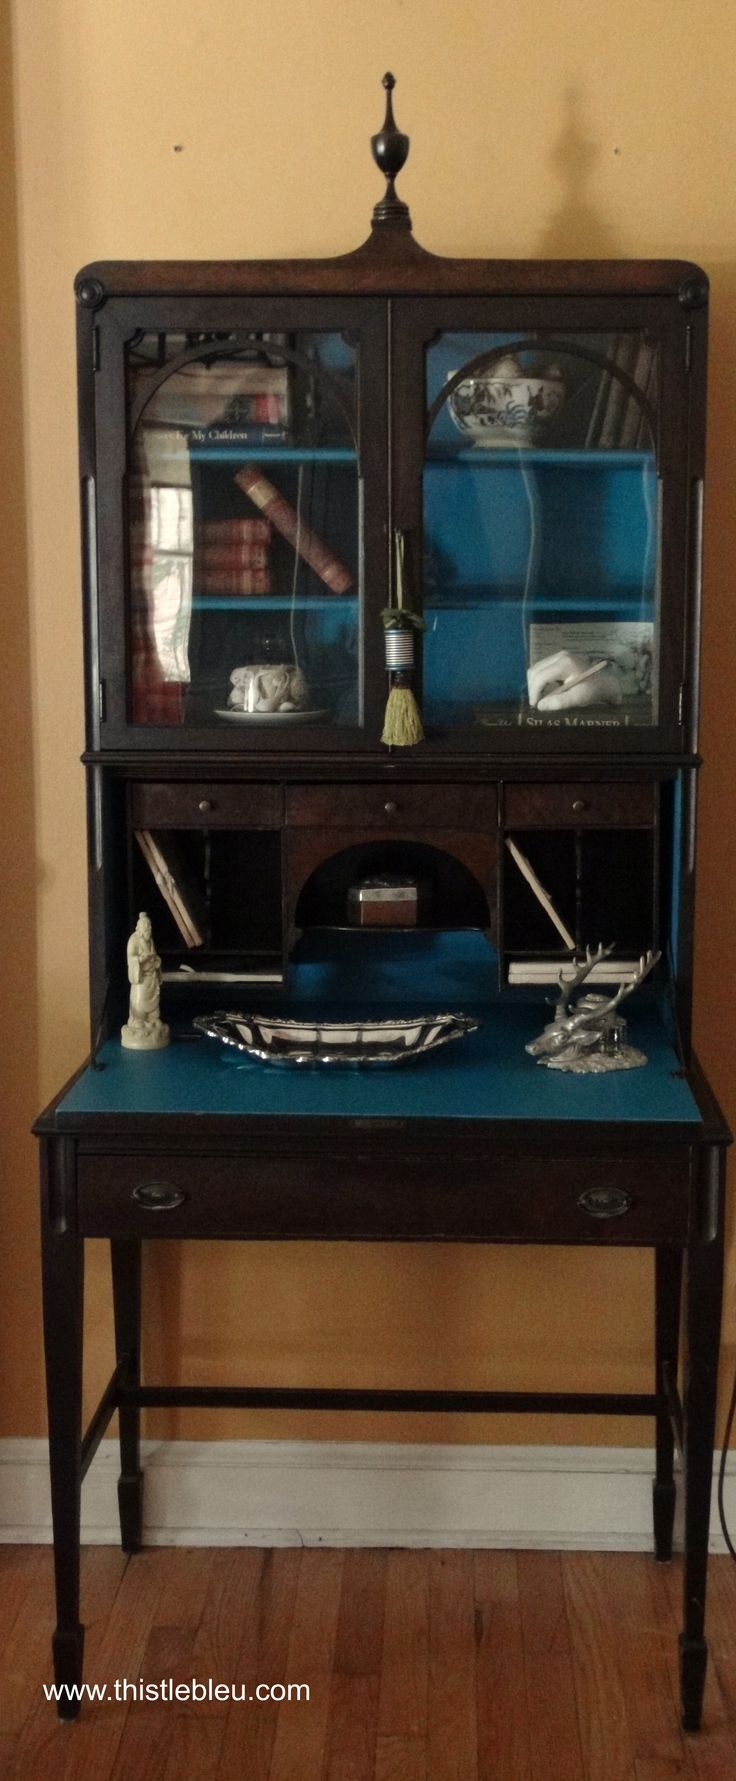 check out the tassel with a spool of thread! painted secretary's desk - blue interior, gray or black exterior?